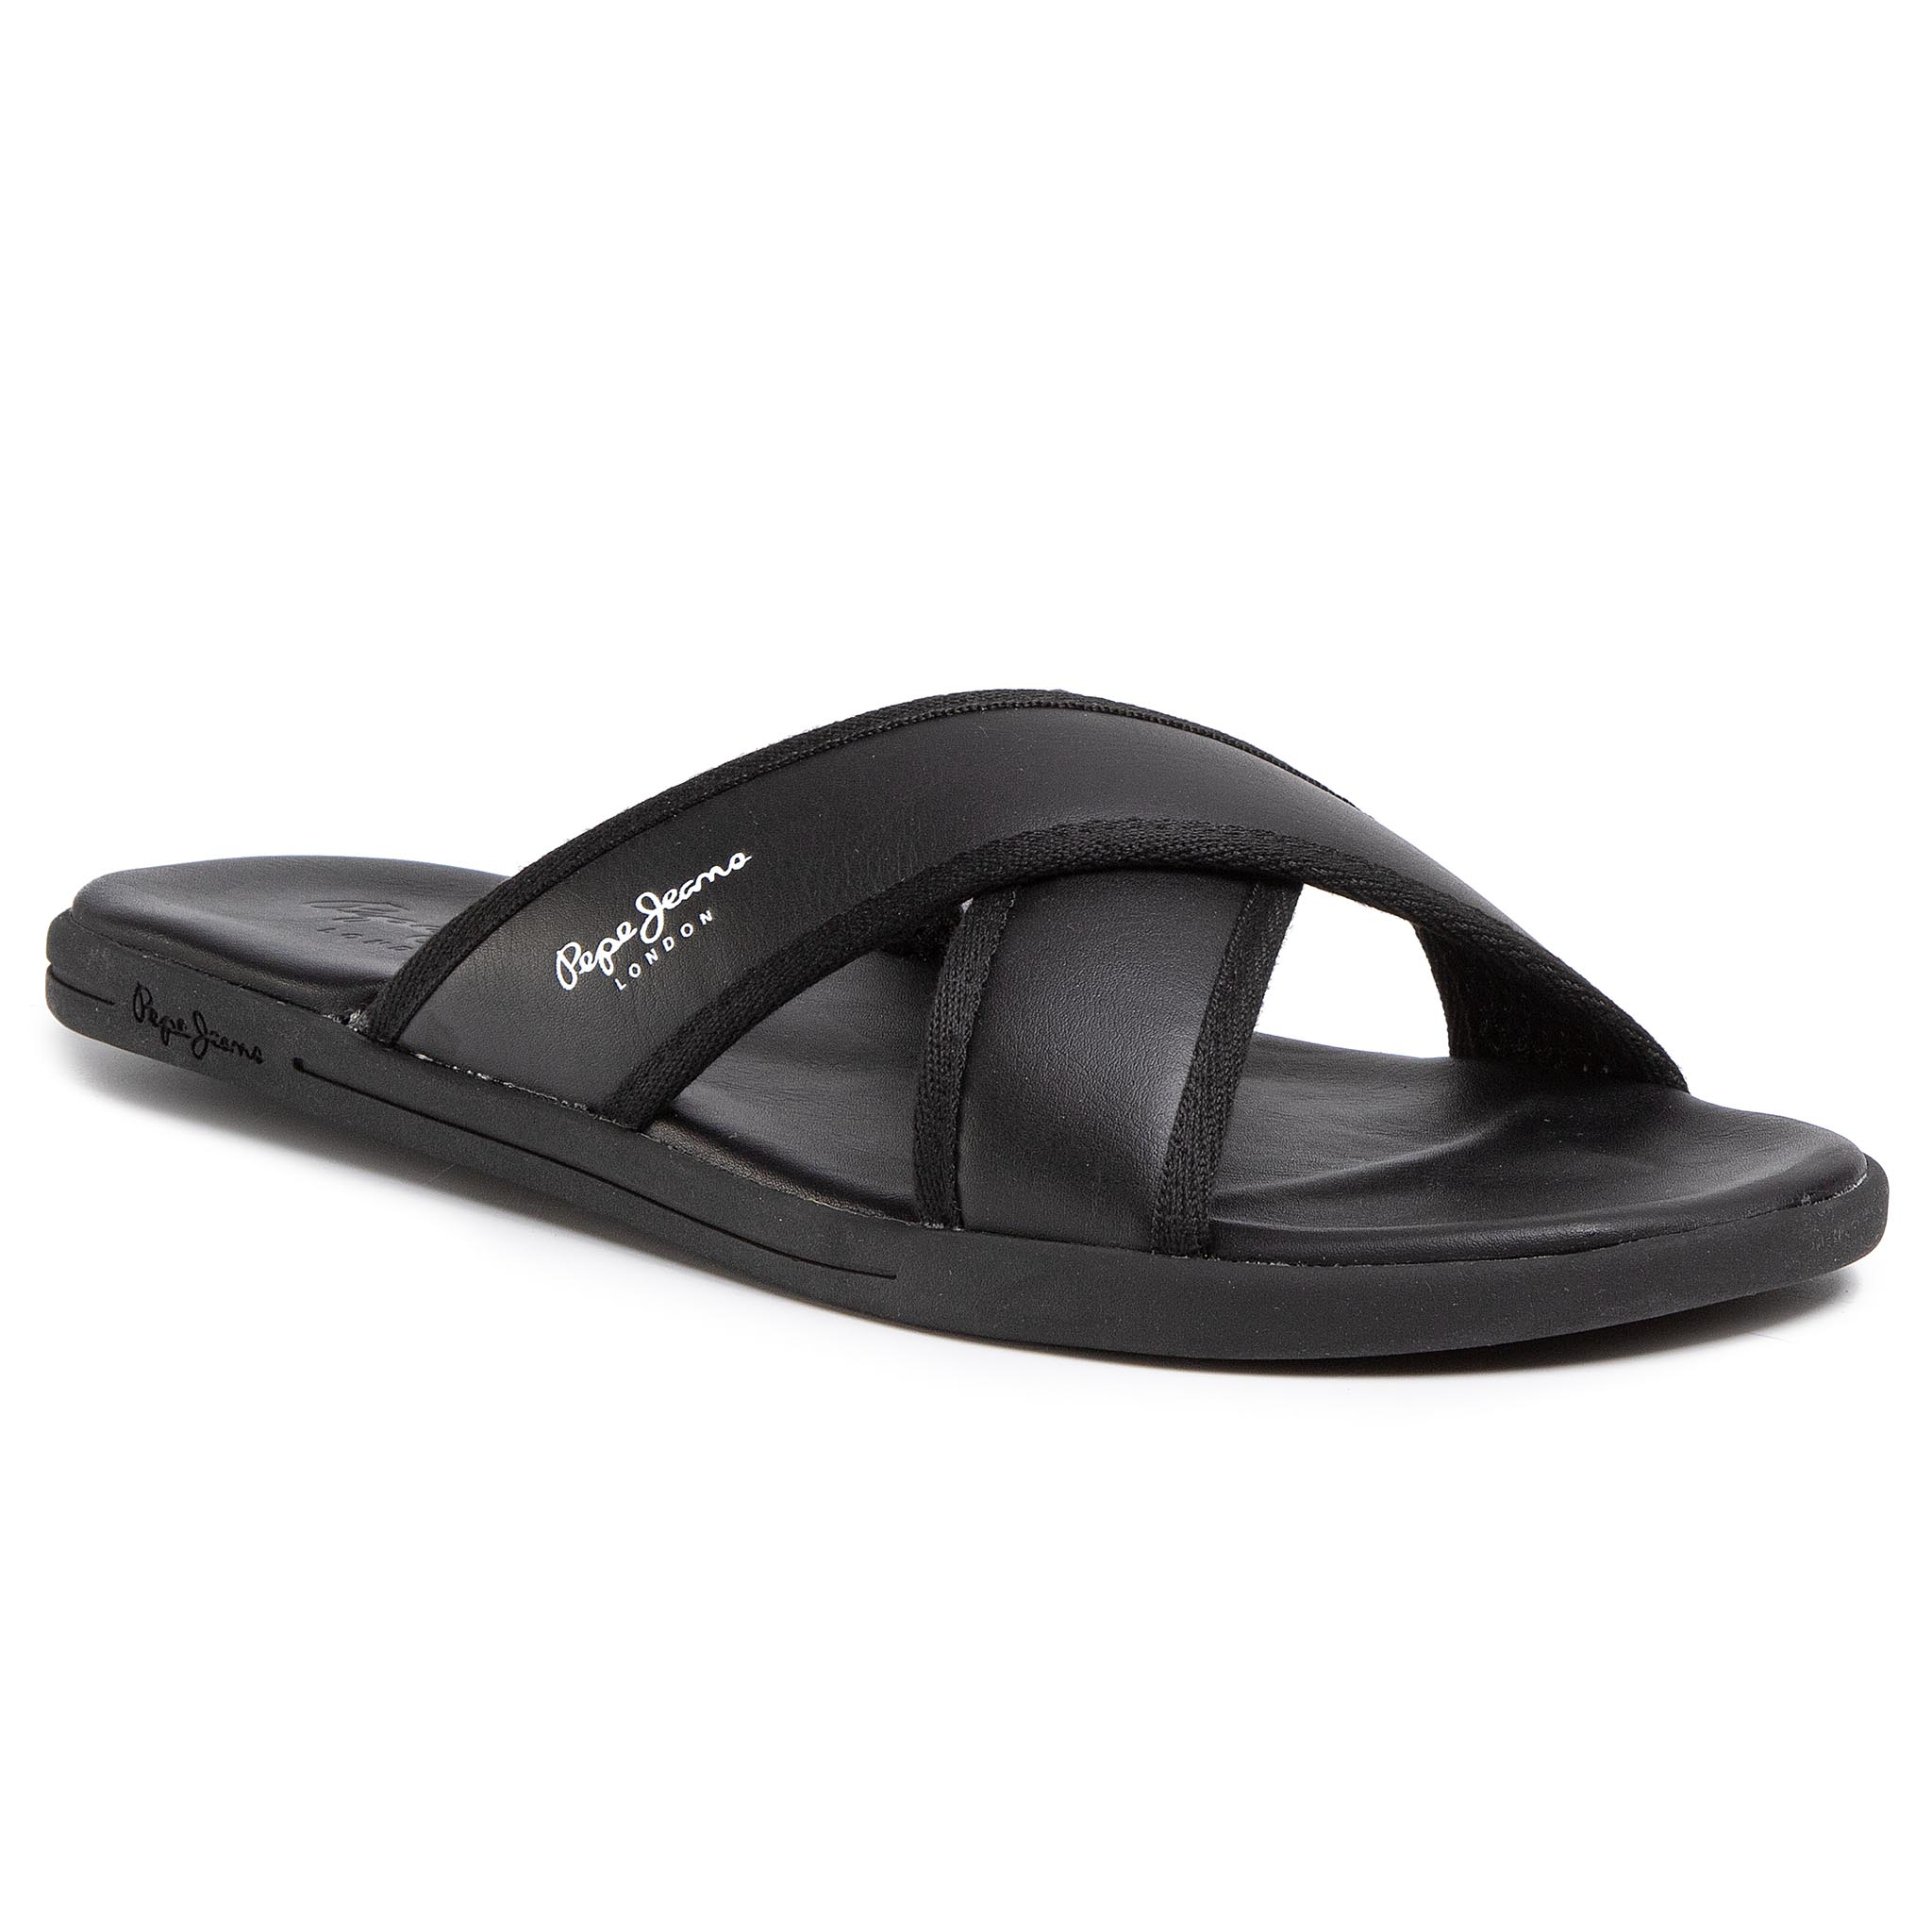 Șlapi PEPE JEANS - K-wai Basic Cross PMS90077 Black 999